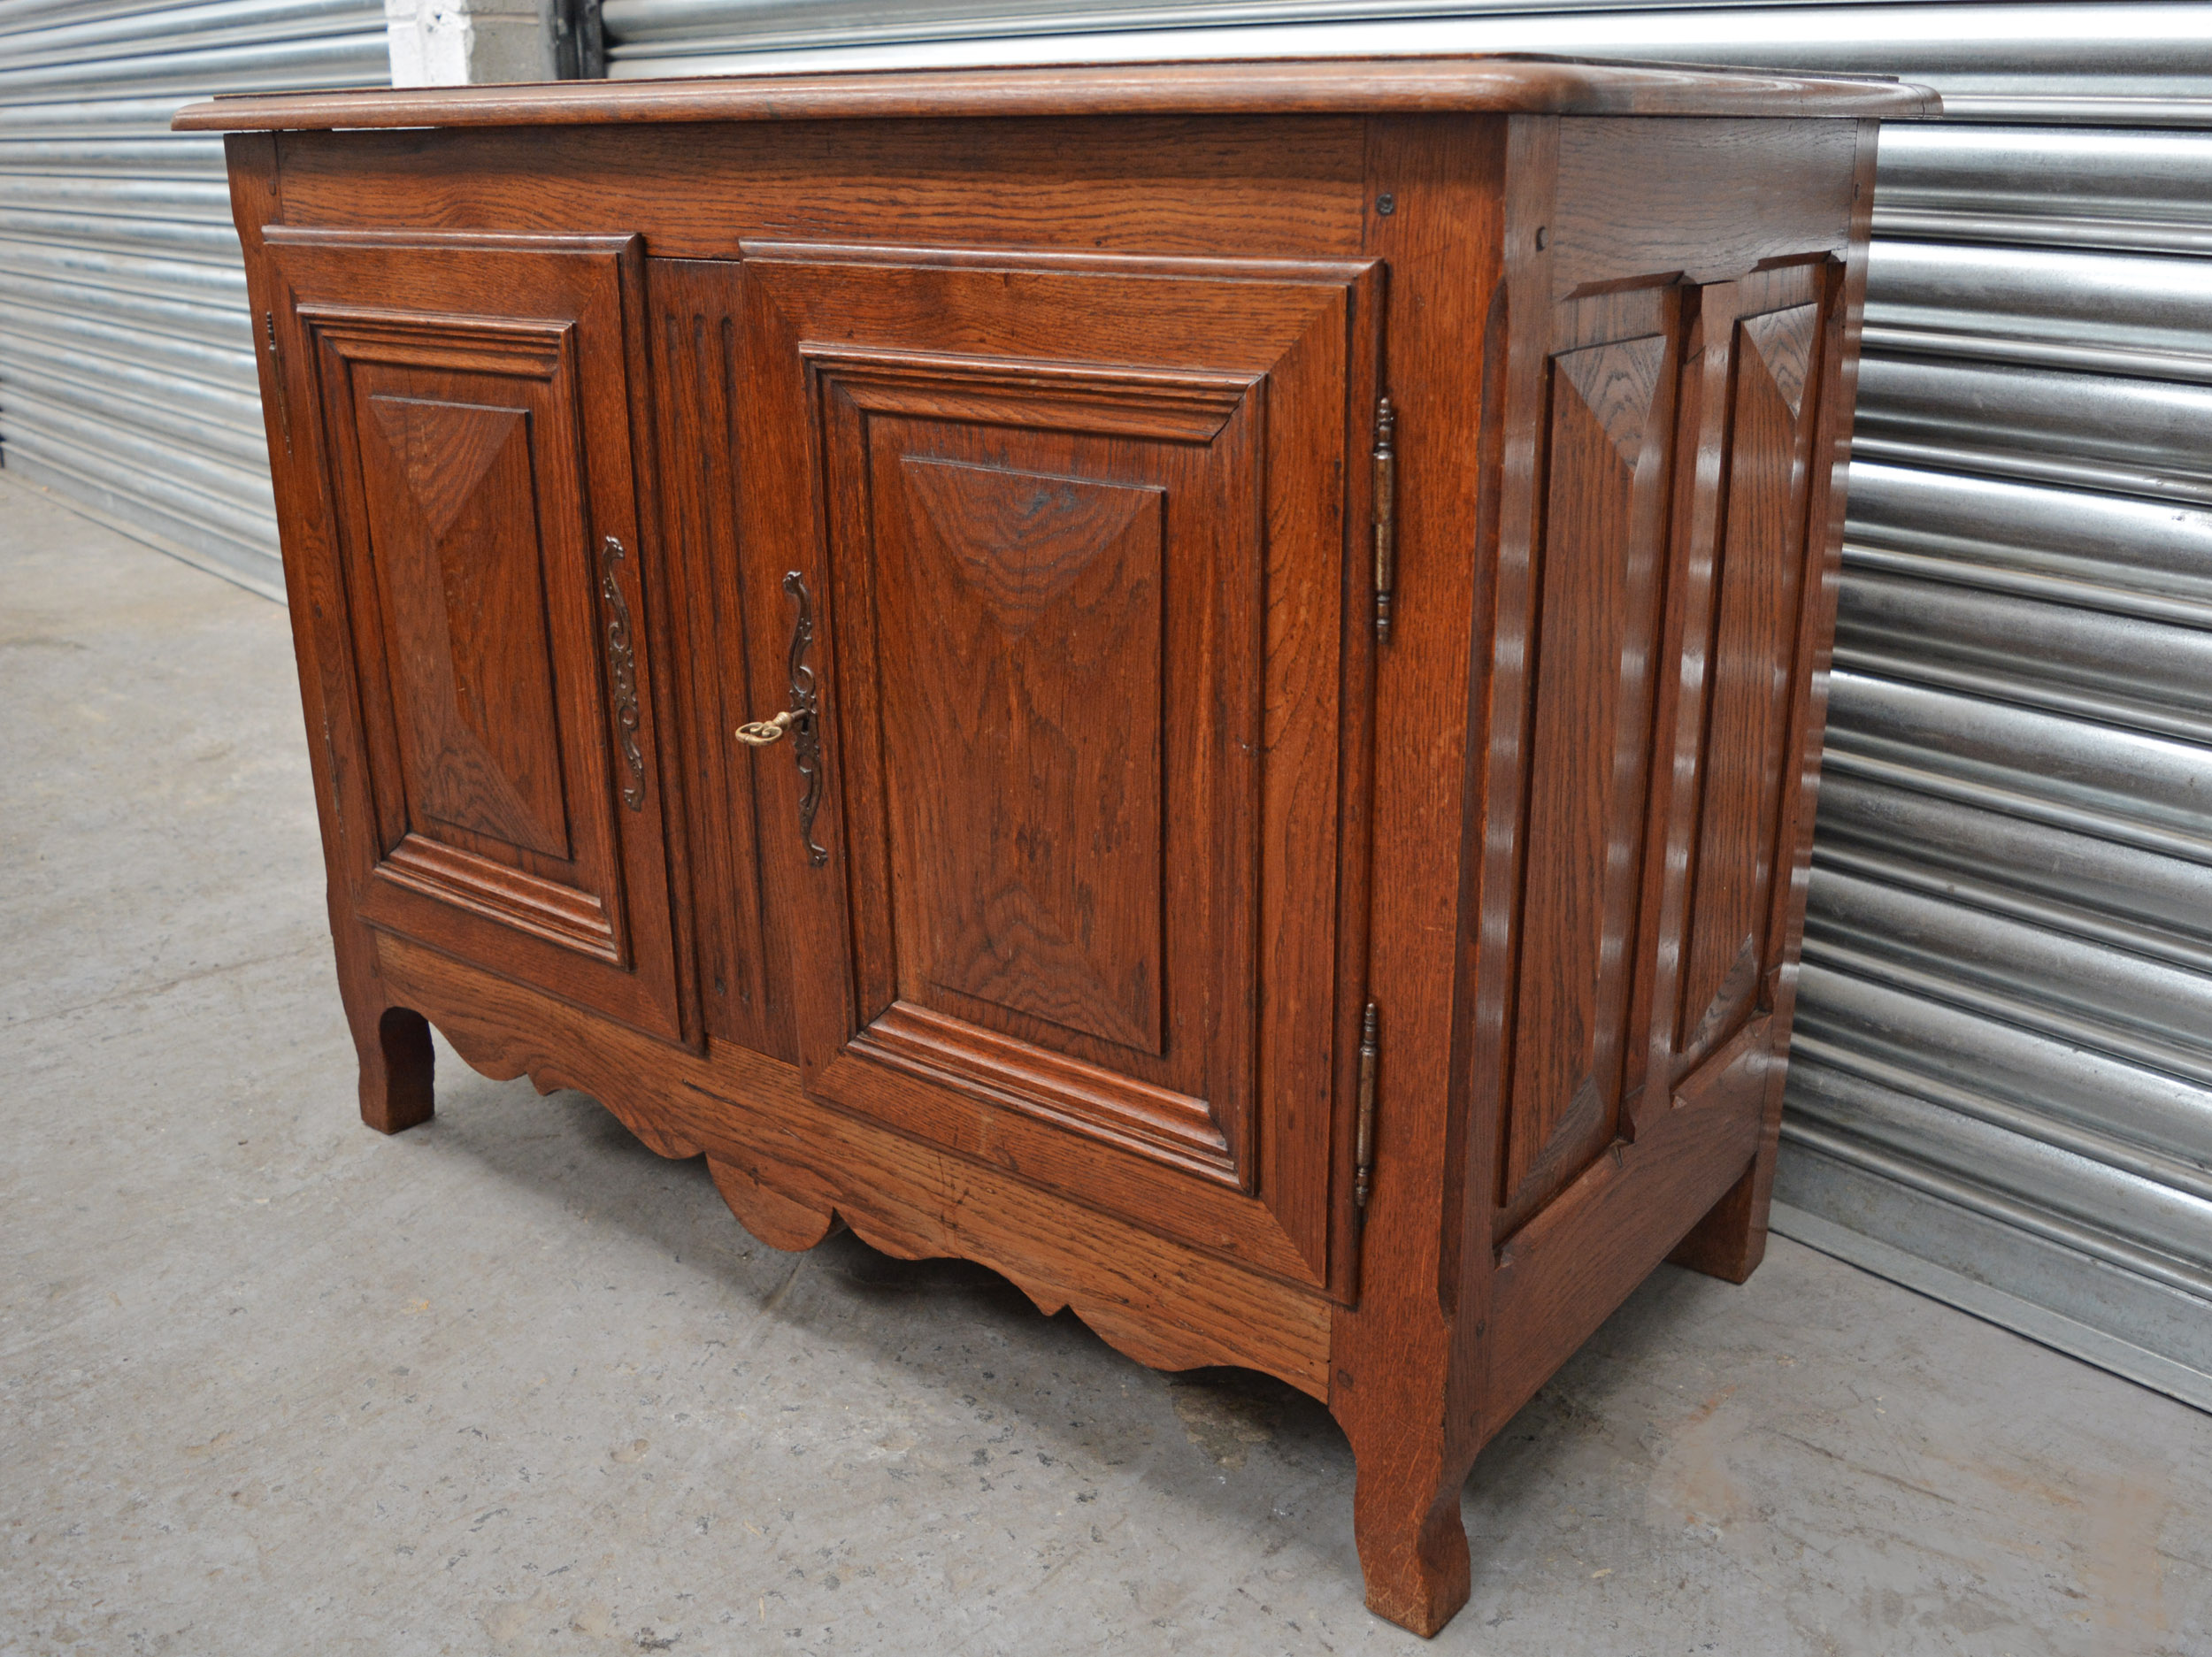 Vintage Kitchen Sideboard Rustyfox Furniture Co Antiques Vintage Upcycled Furniture